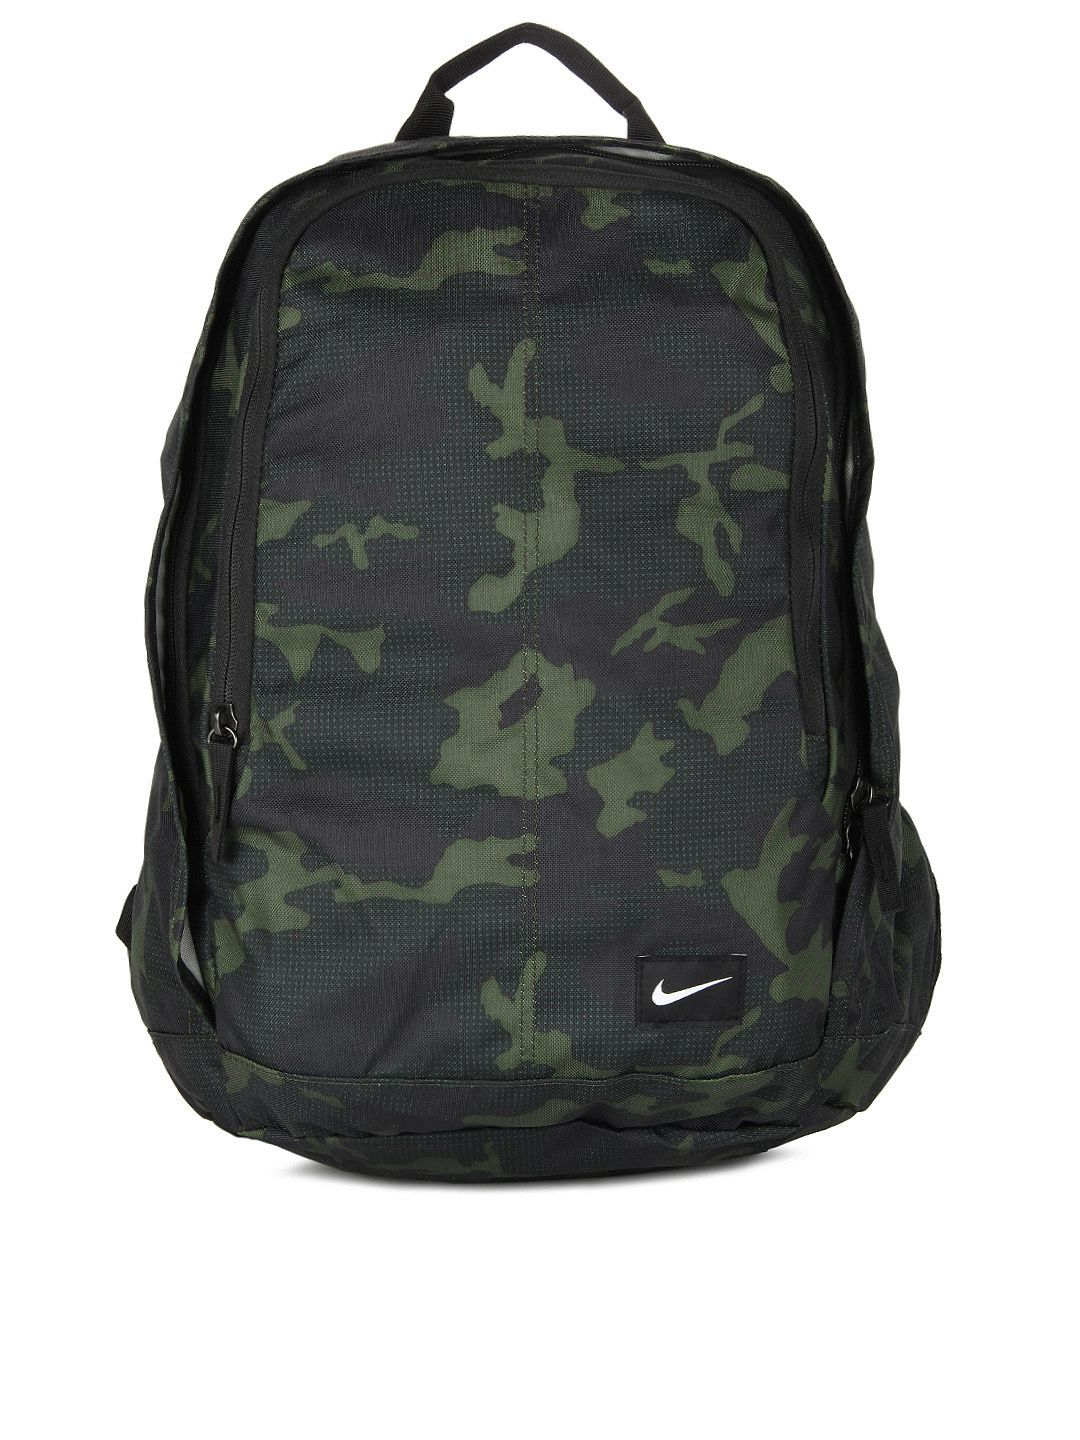 799e90051027c Buy Nike Men Green & Black Camouflage Hayward Backpack - - Accessories for  Men from Nike at Rs. 2595